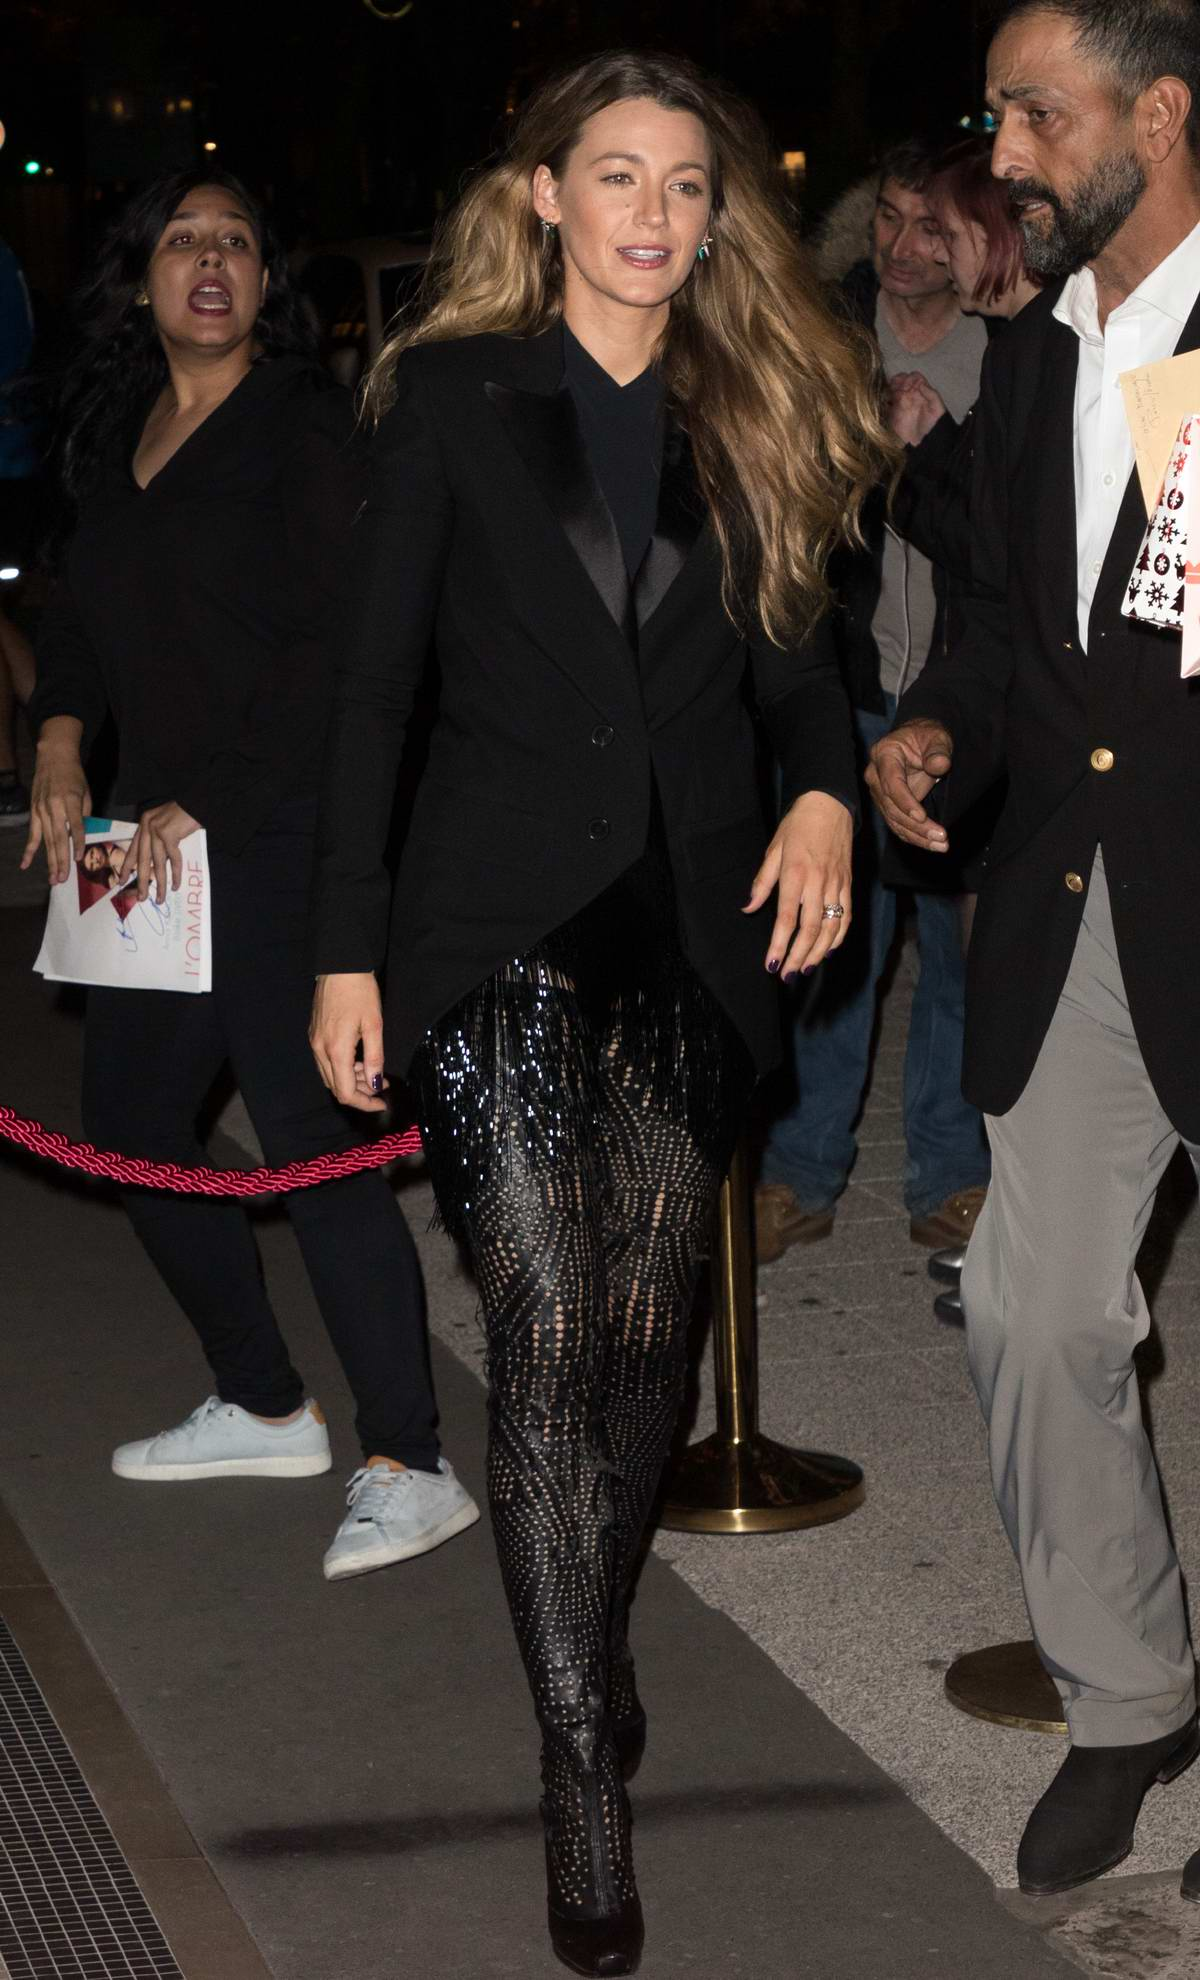 Blake Lively rocks an all black ensemble as she heads for a night out in Paris, France